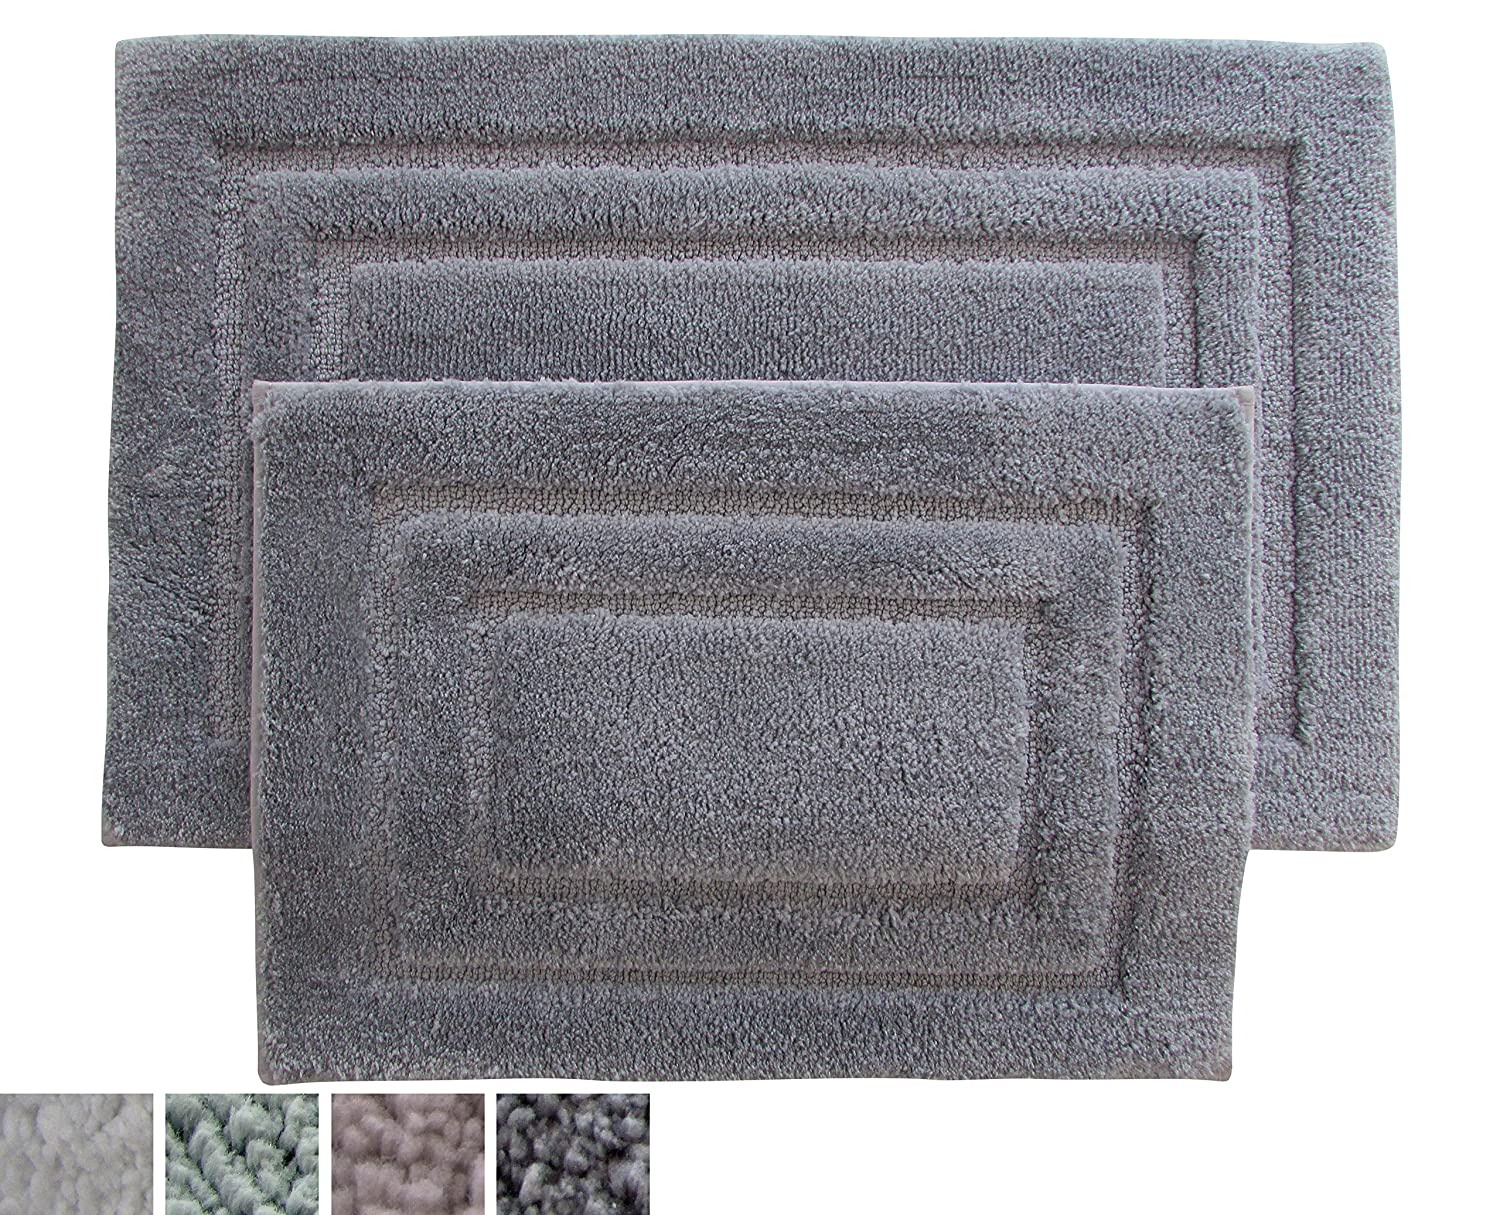 Shop Amazoncom Bath Rugs - Dark teal bath rug for bathroom decorating ideas